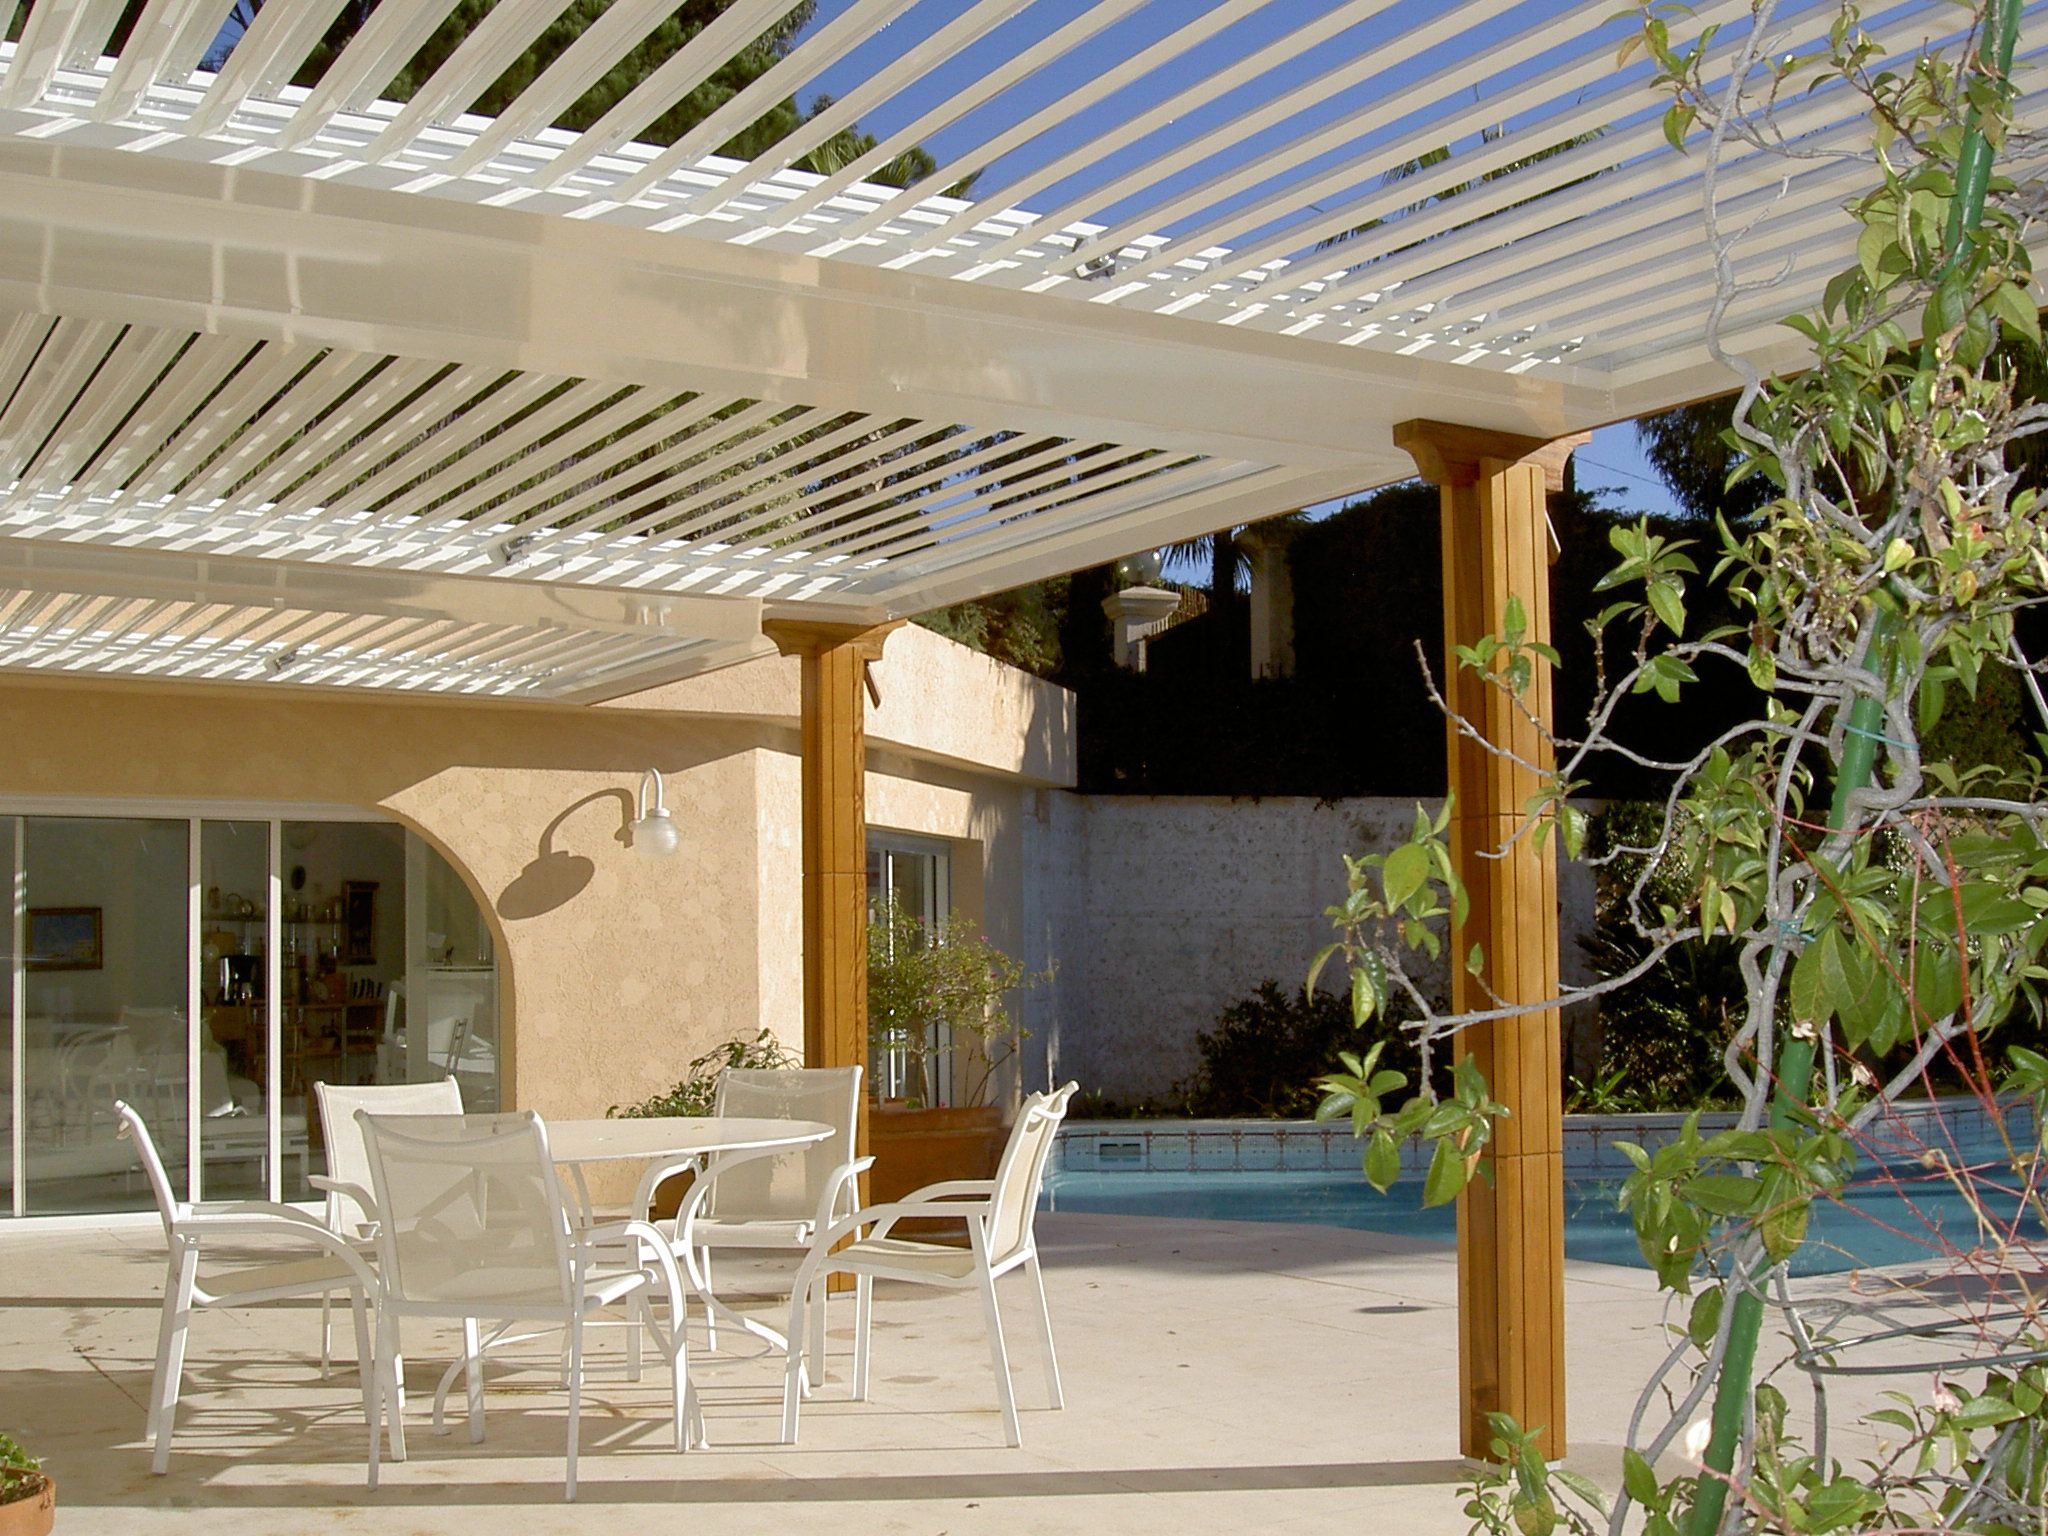 Deck U0026 Patio Living, Under Deck Ceilings, Retractable Awnings, Opening Roof  System